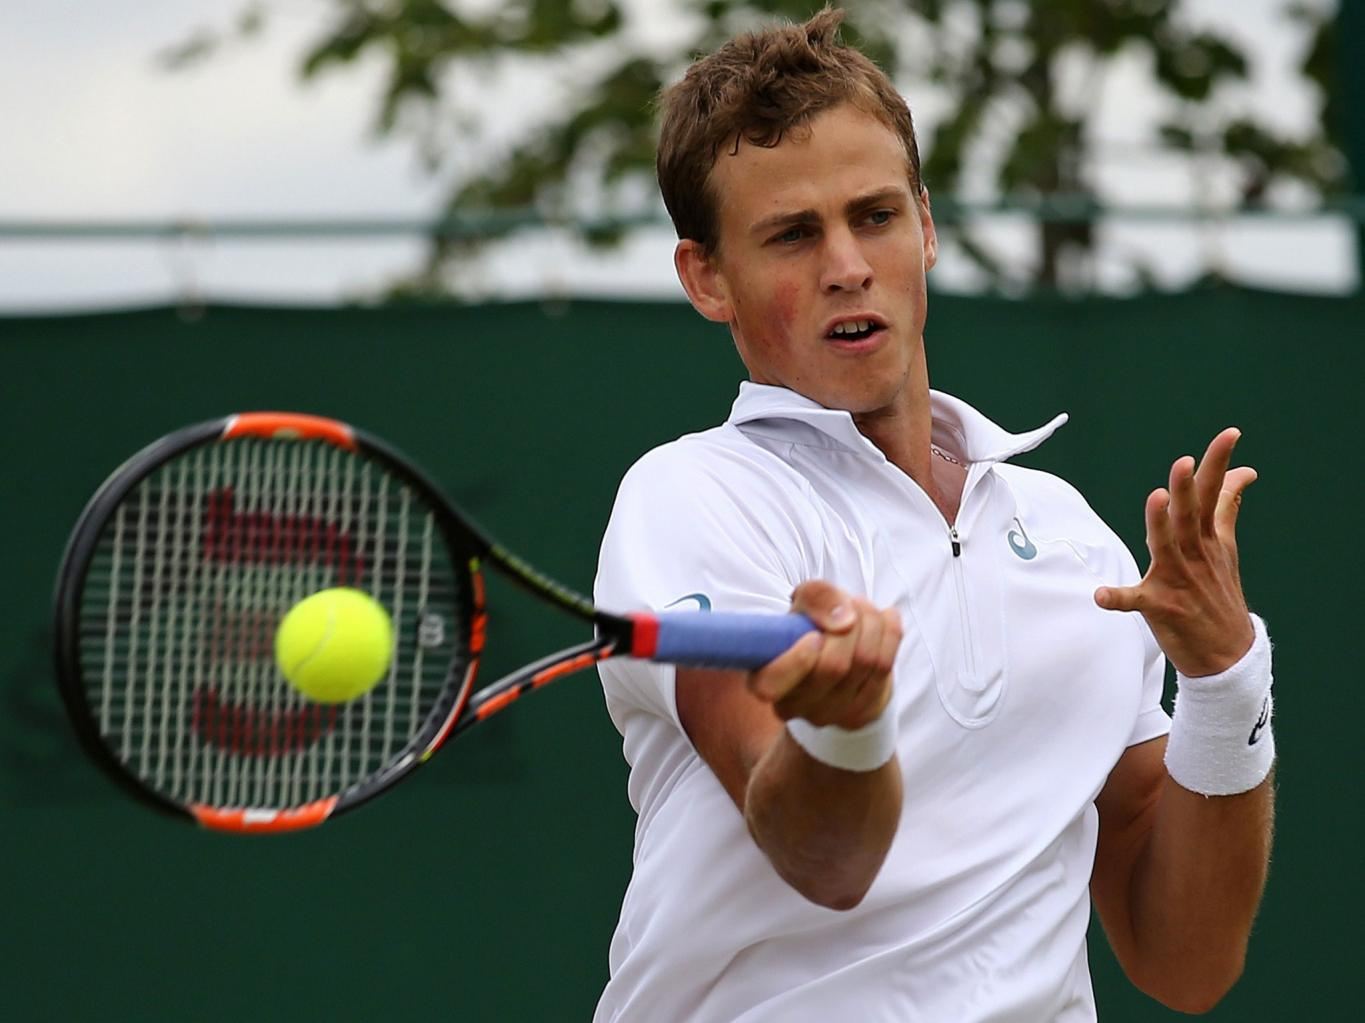 Wimbledon 2015: Vasek Pospisil Books Quarter-final Against Andy